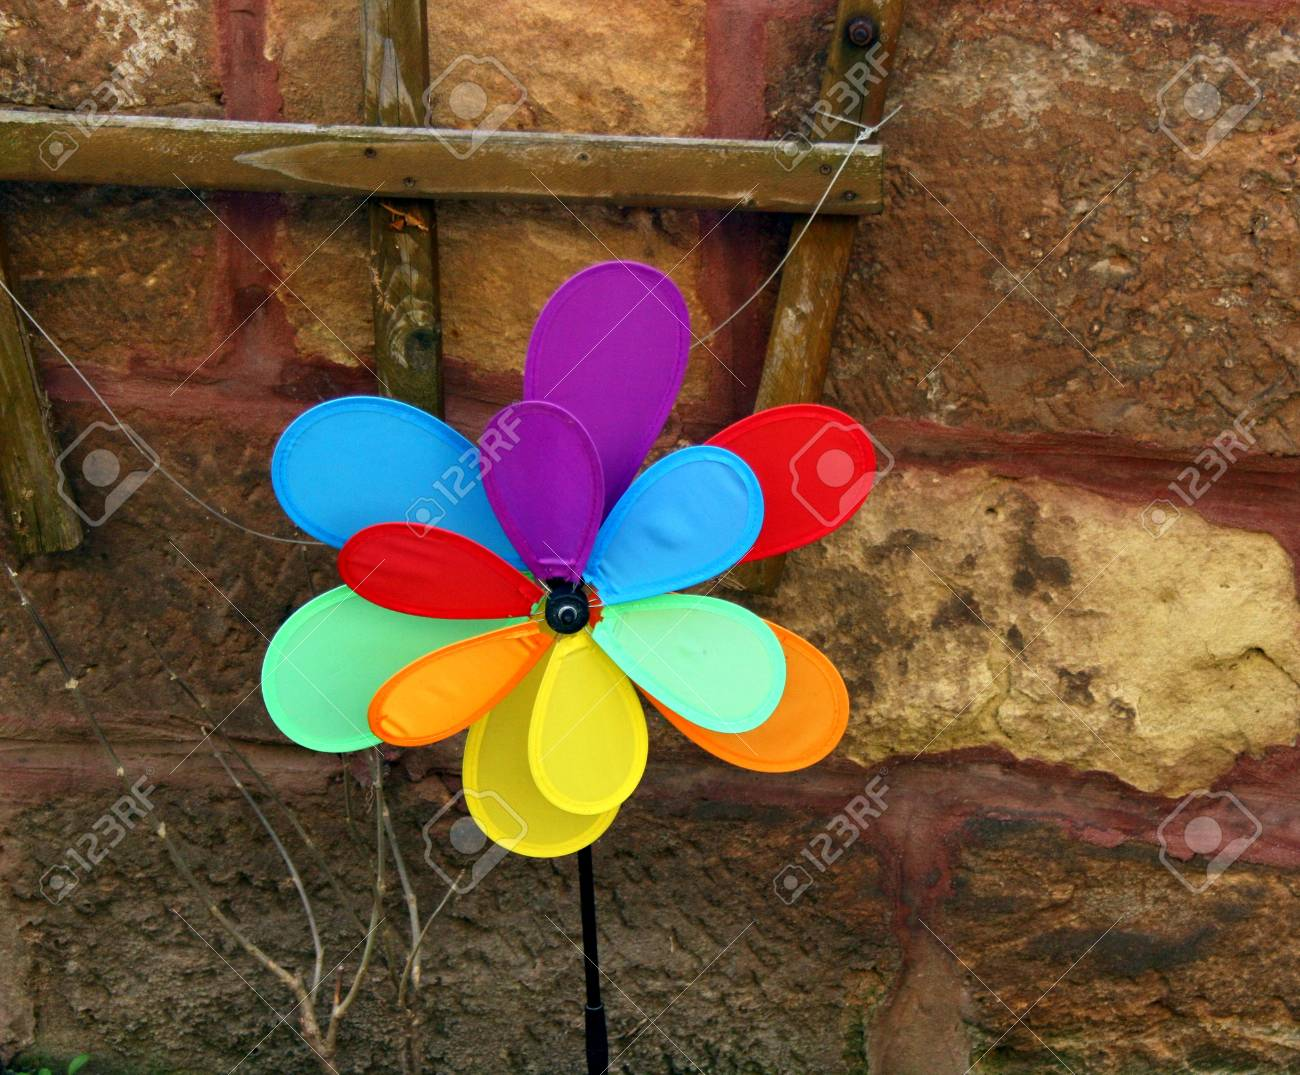 Garden Deco Colorful Pinwheel Stock Photo, Picture And Royalty Free ...